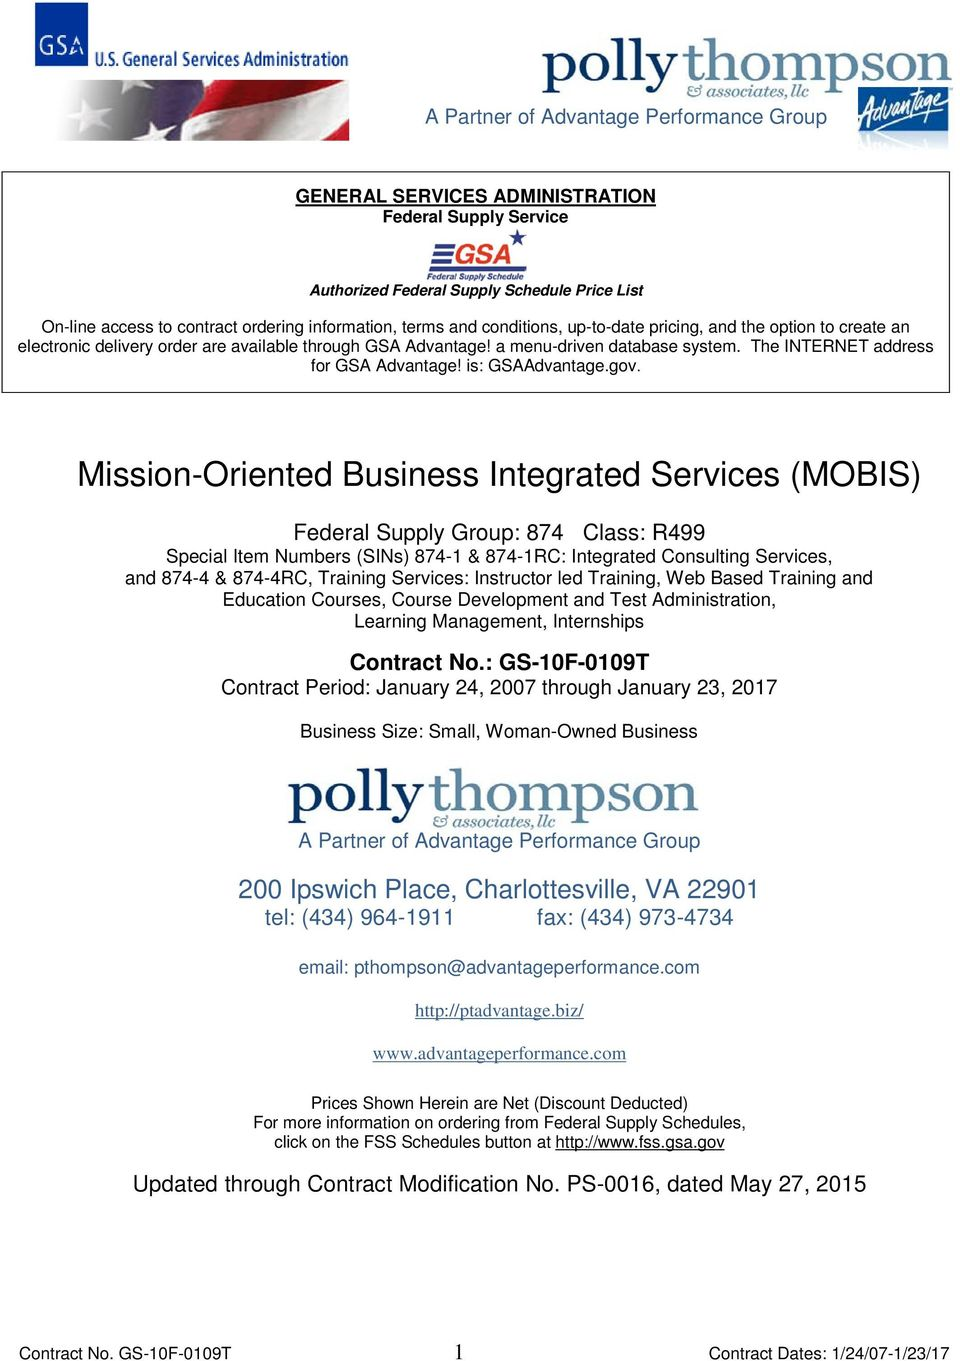 Mission-Oriented Business Integrated Services (MOBIS) Federal Supply Group: 874 Class: R499 Special Item Numbers (SINs) 874-1 & 874-1RC: Integrated Consulting Services, and 874-4 & 874-4RC, Training